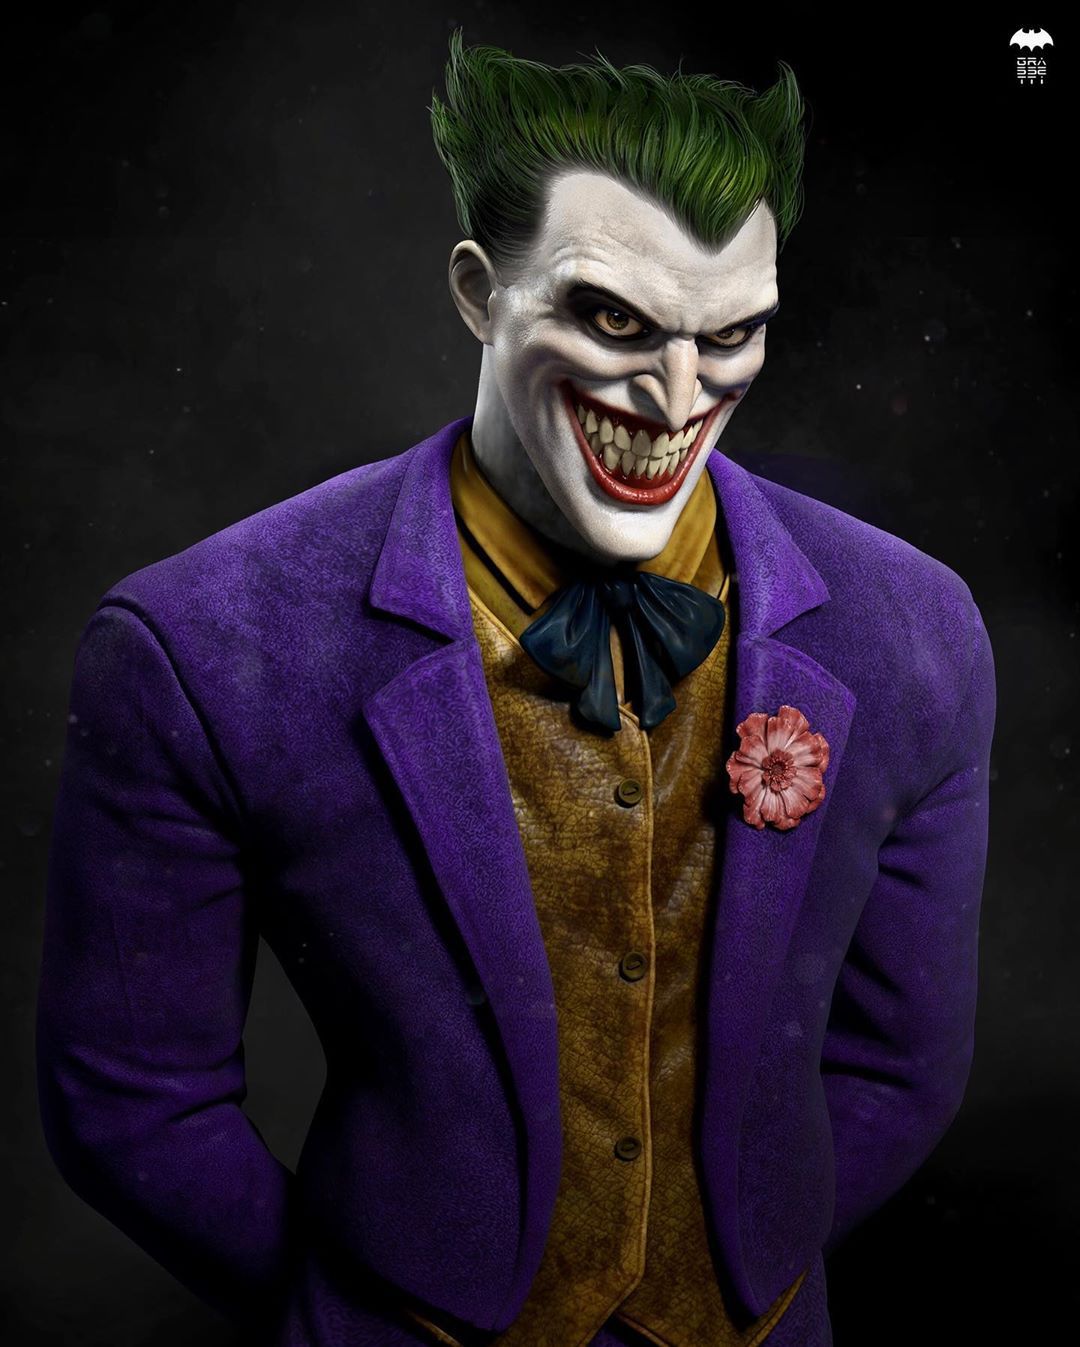 3d model character design joker